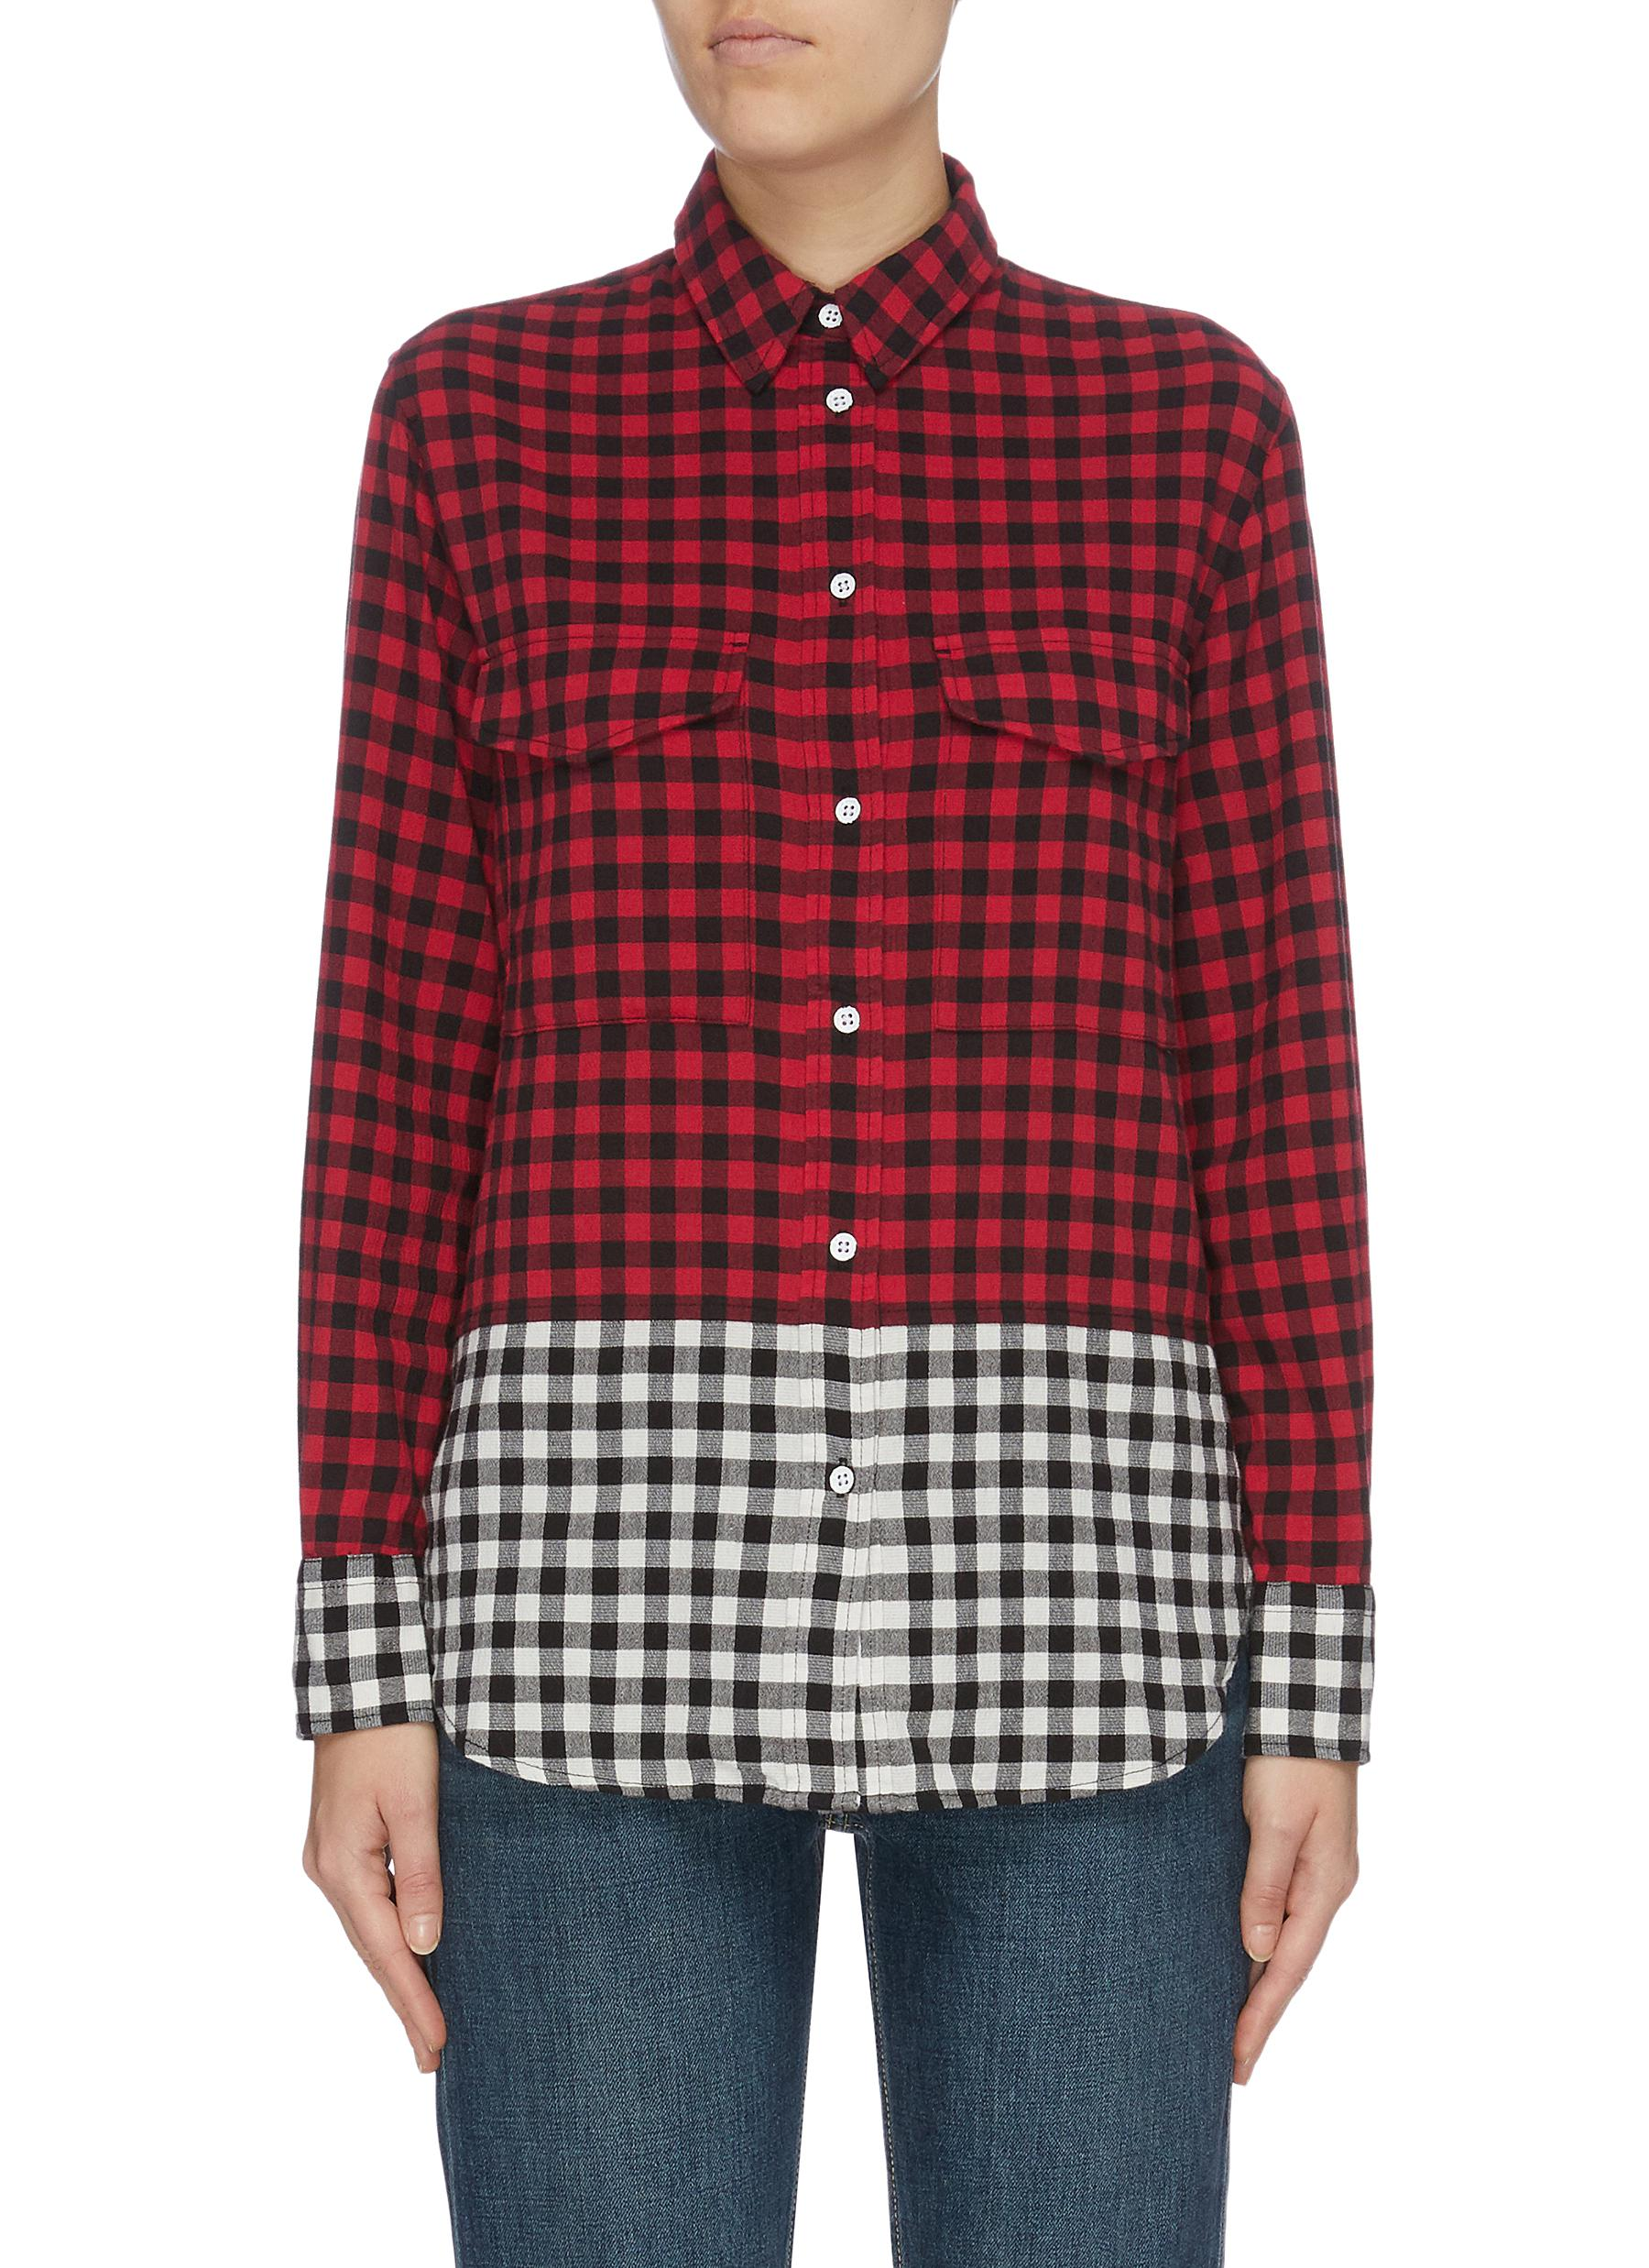 Birdie check plaid oversized shirt by Rag & Bone/Jean